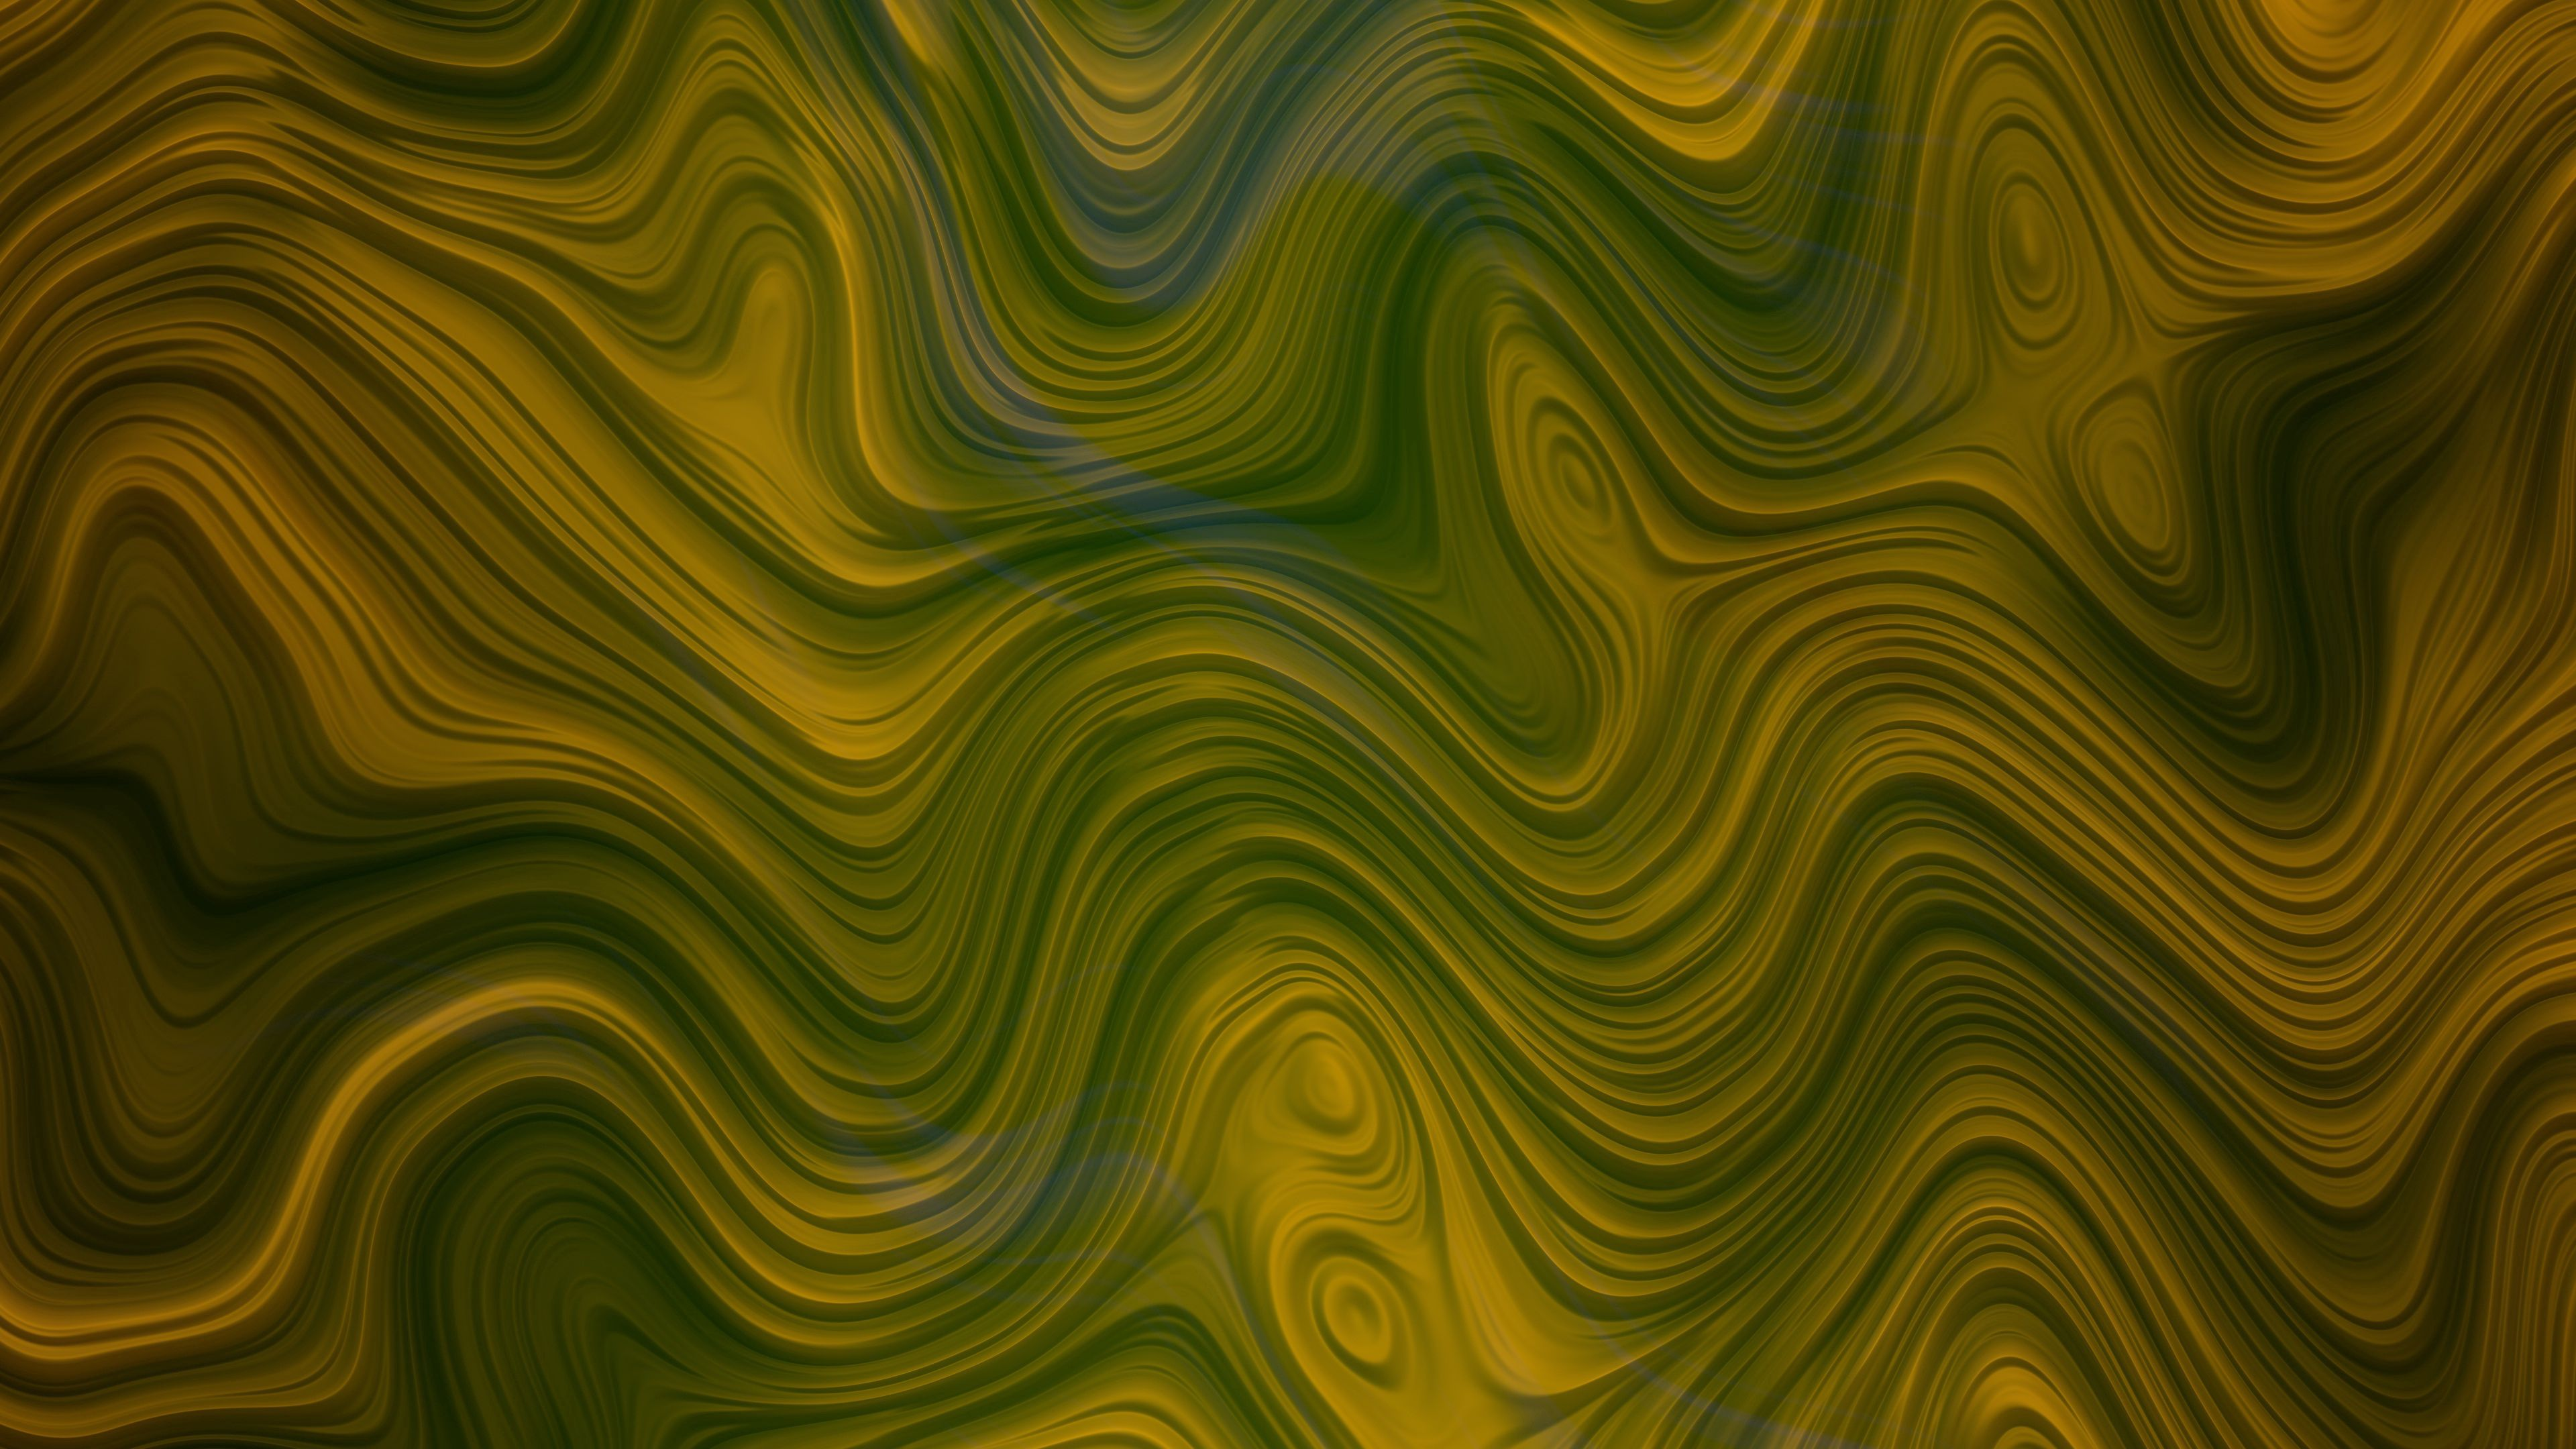 50460 download wallpaper Textures, Texture, Lines, Wavy, Layers, Irregularities screensavers and pictures for free